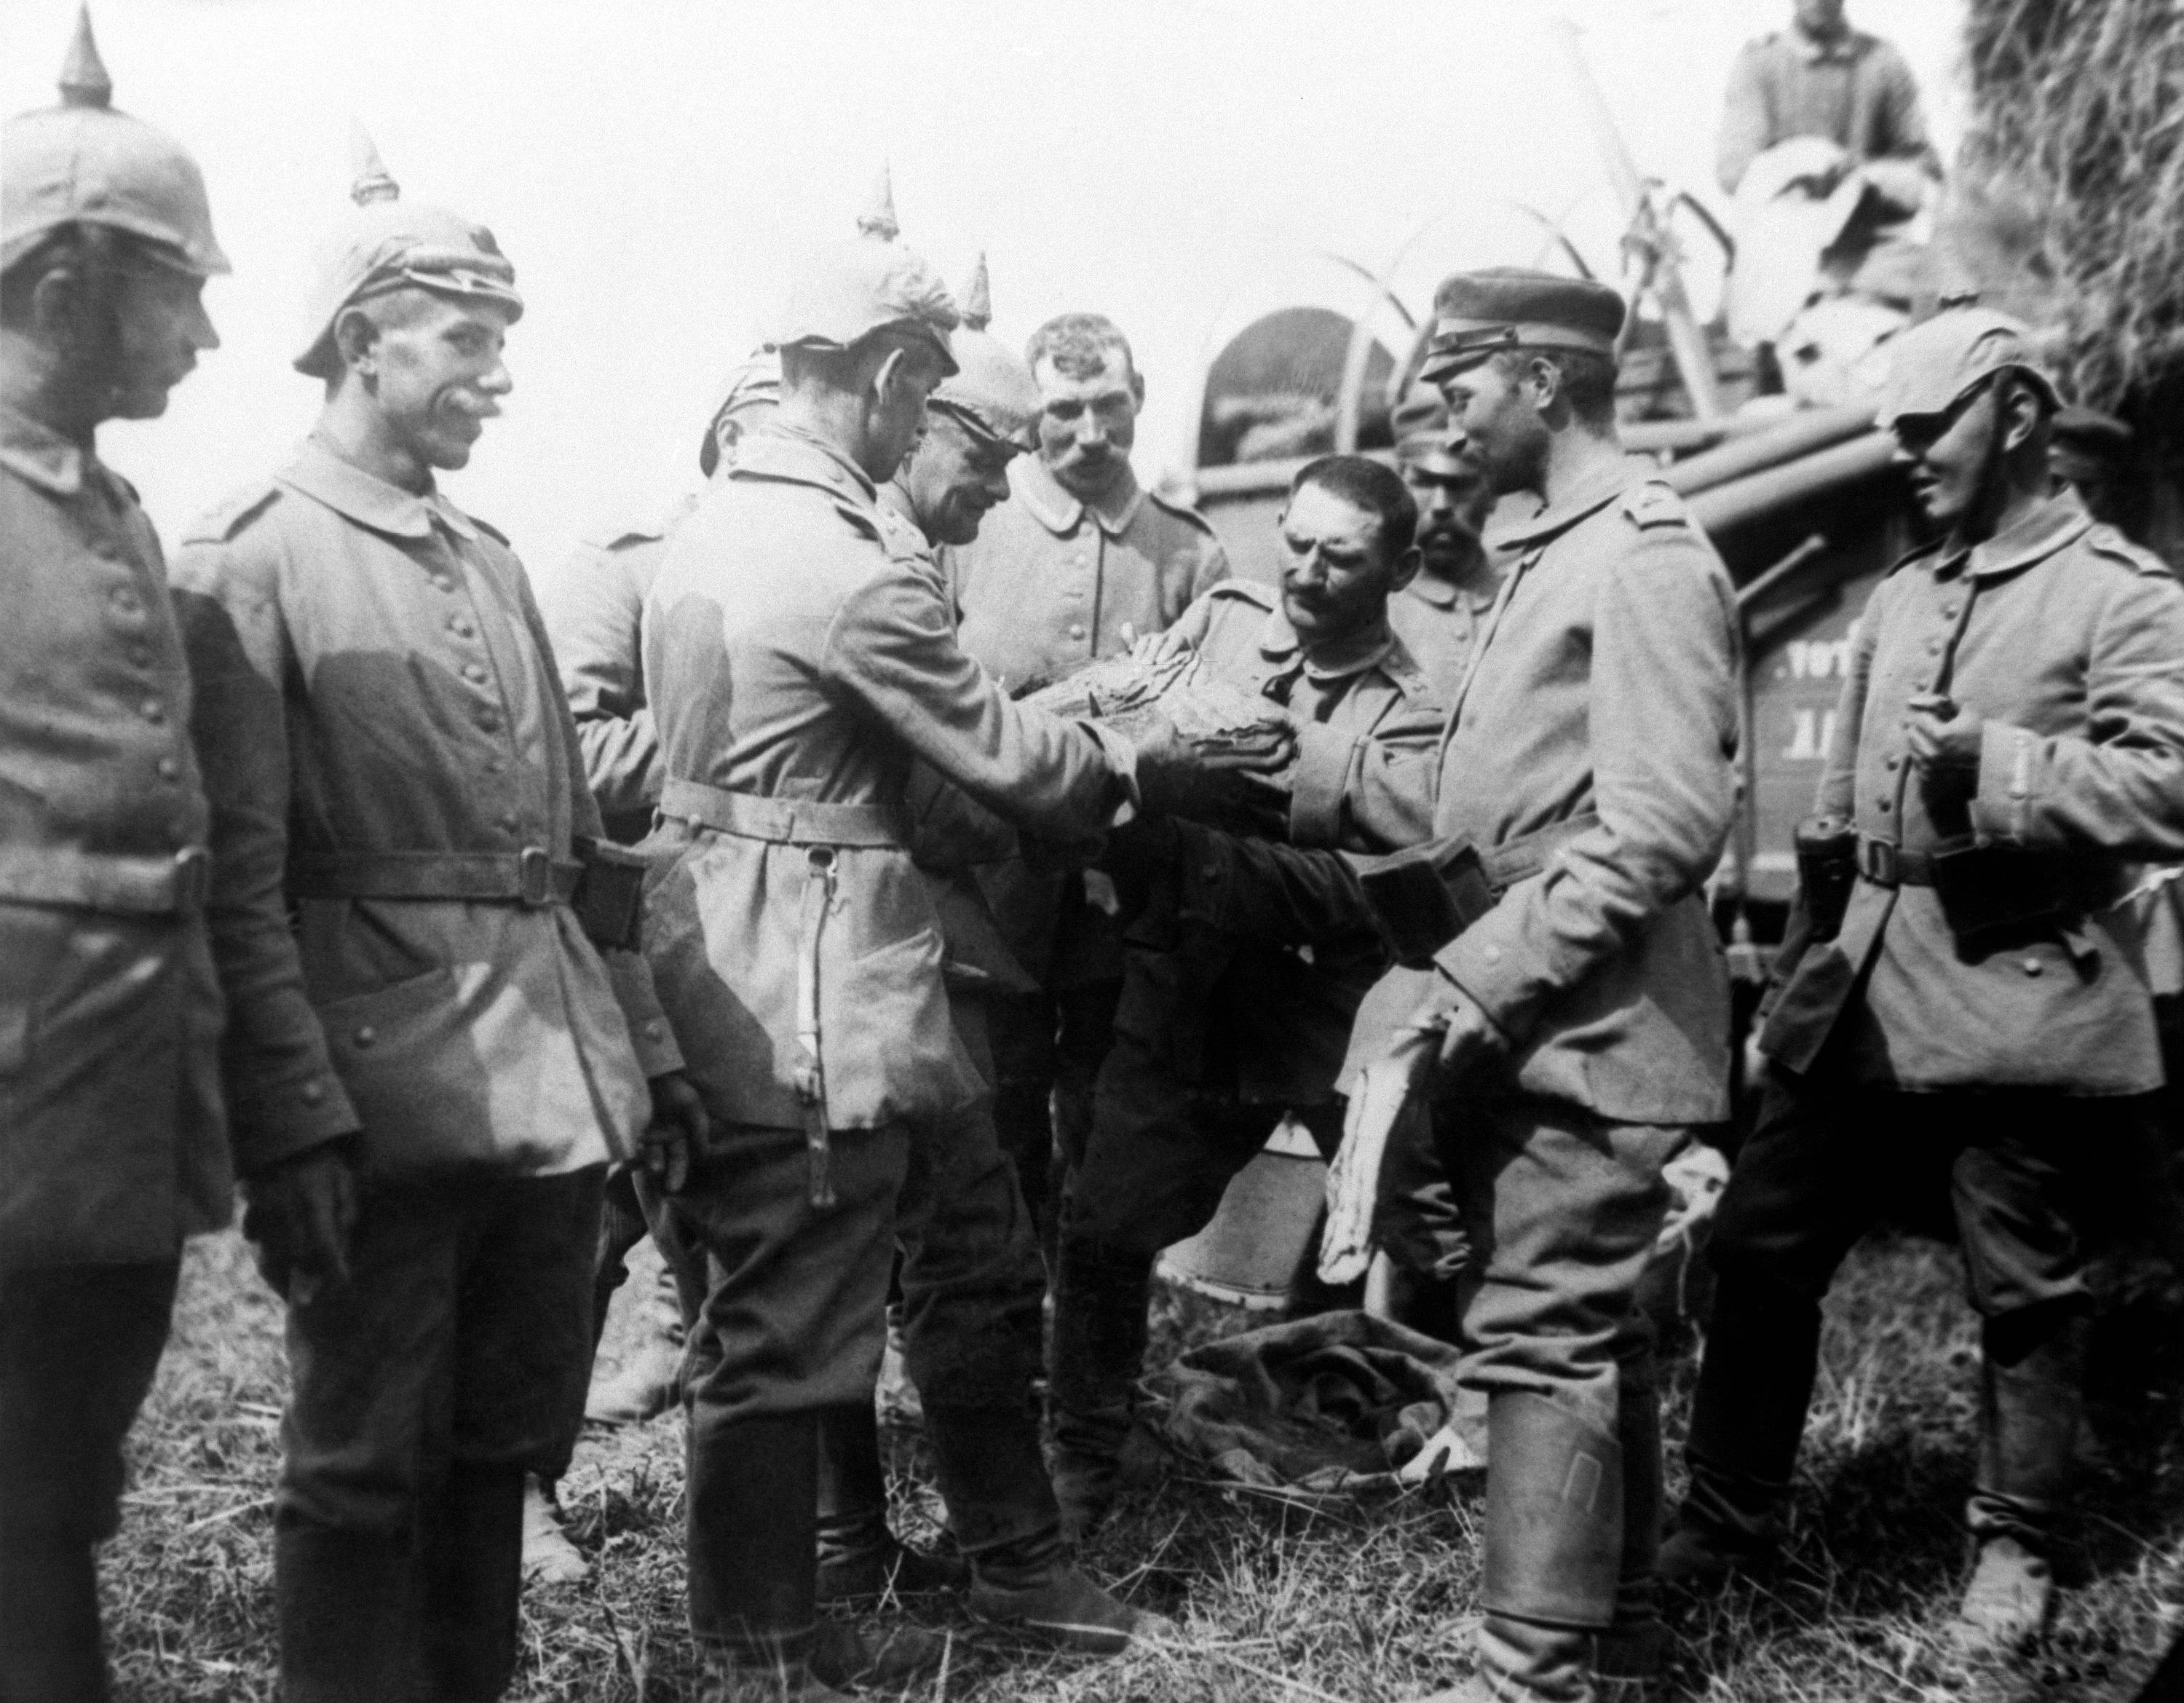 EIGHT OF 100: In this 1914 file photo, German army troops receive rations from a field transport while advancing toward Brussels. In mid-August 1914 the German army launched its assault on Brussels.